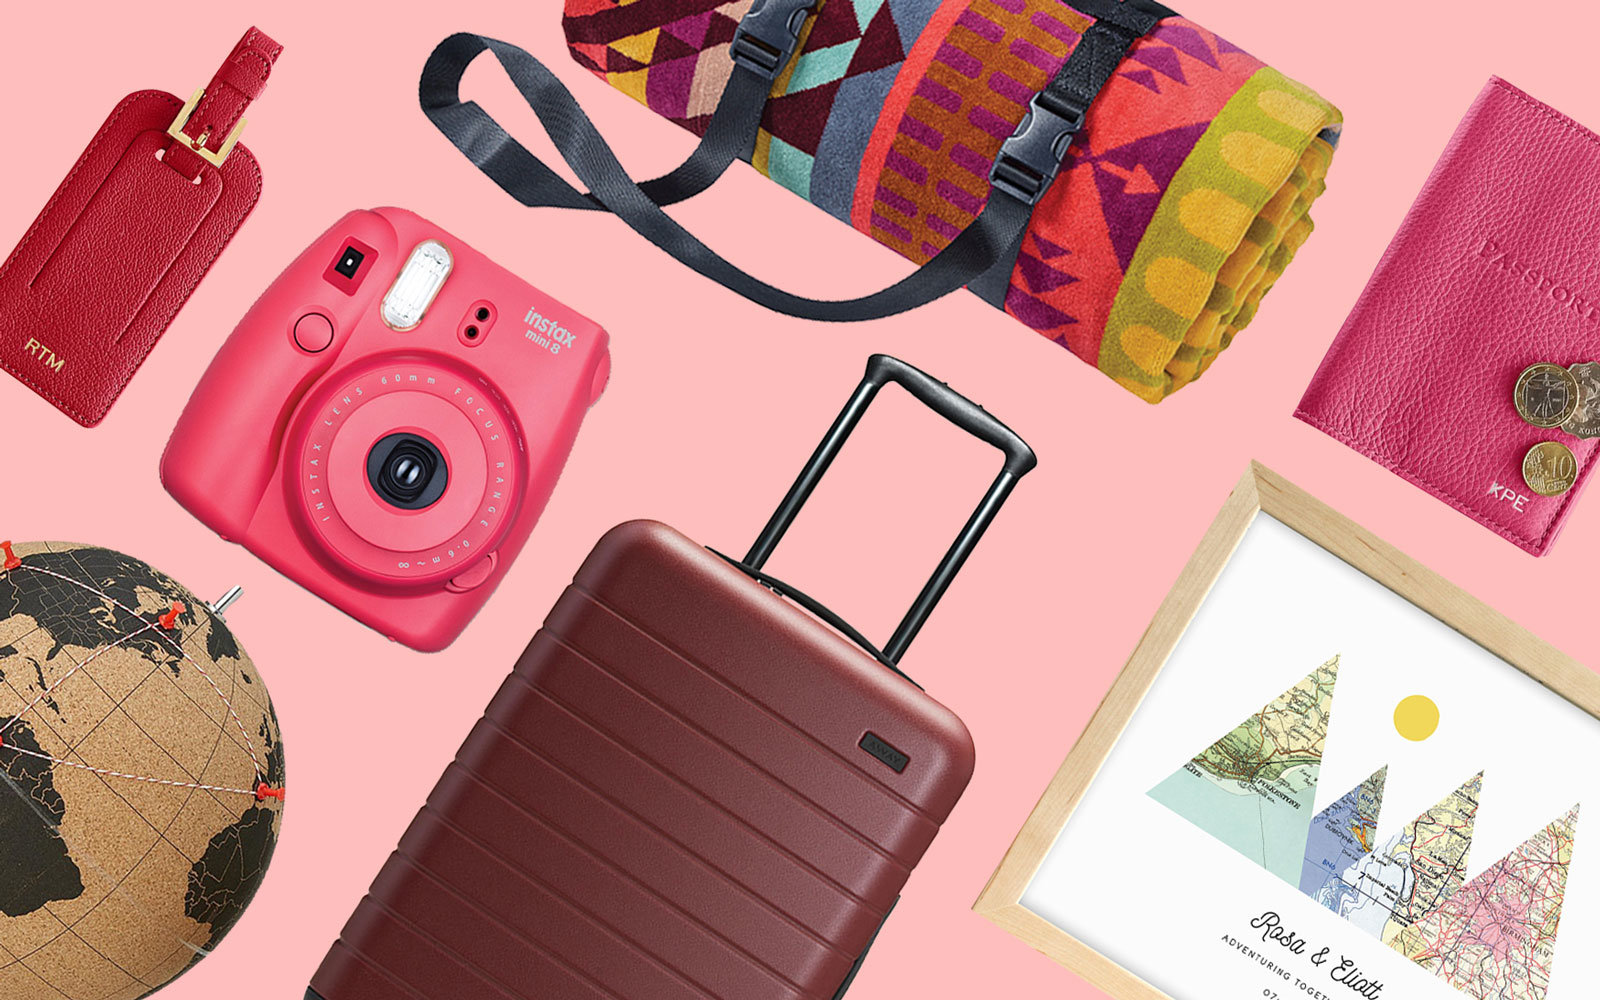 Samantha Brown Luggage Qvc: The Ultimate Valentine's Day Gift Guide